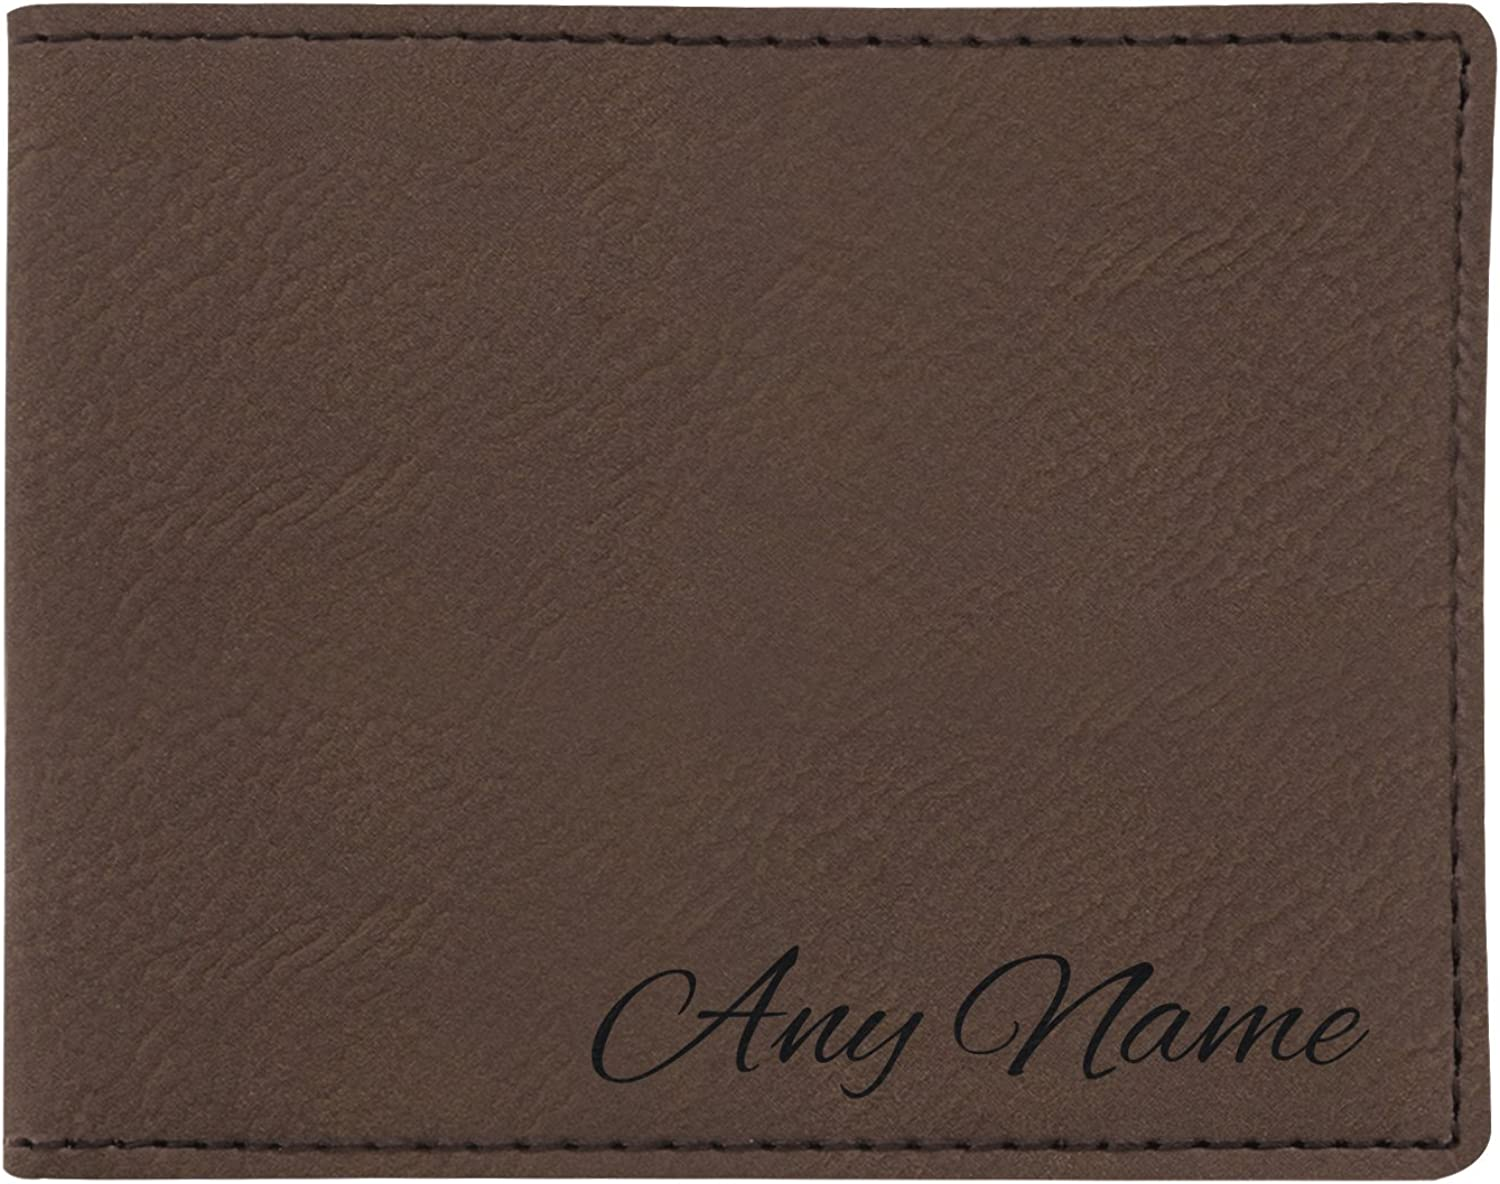 Personalized Wallet Your Name Custom Laser Engraved Leatherette Bifold Wallet